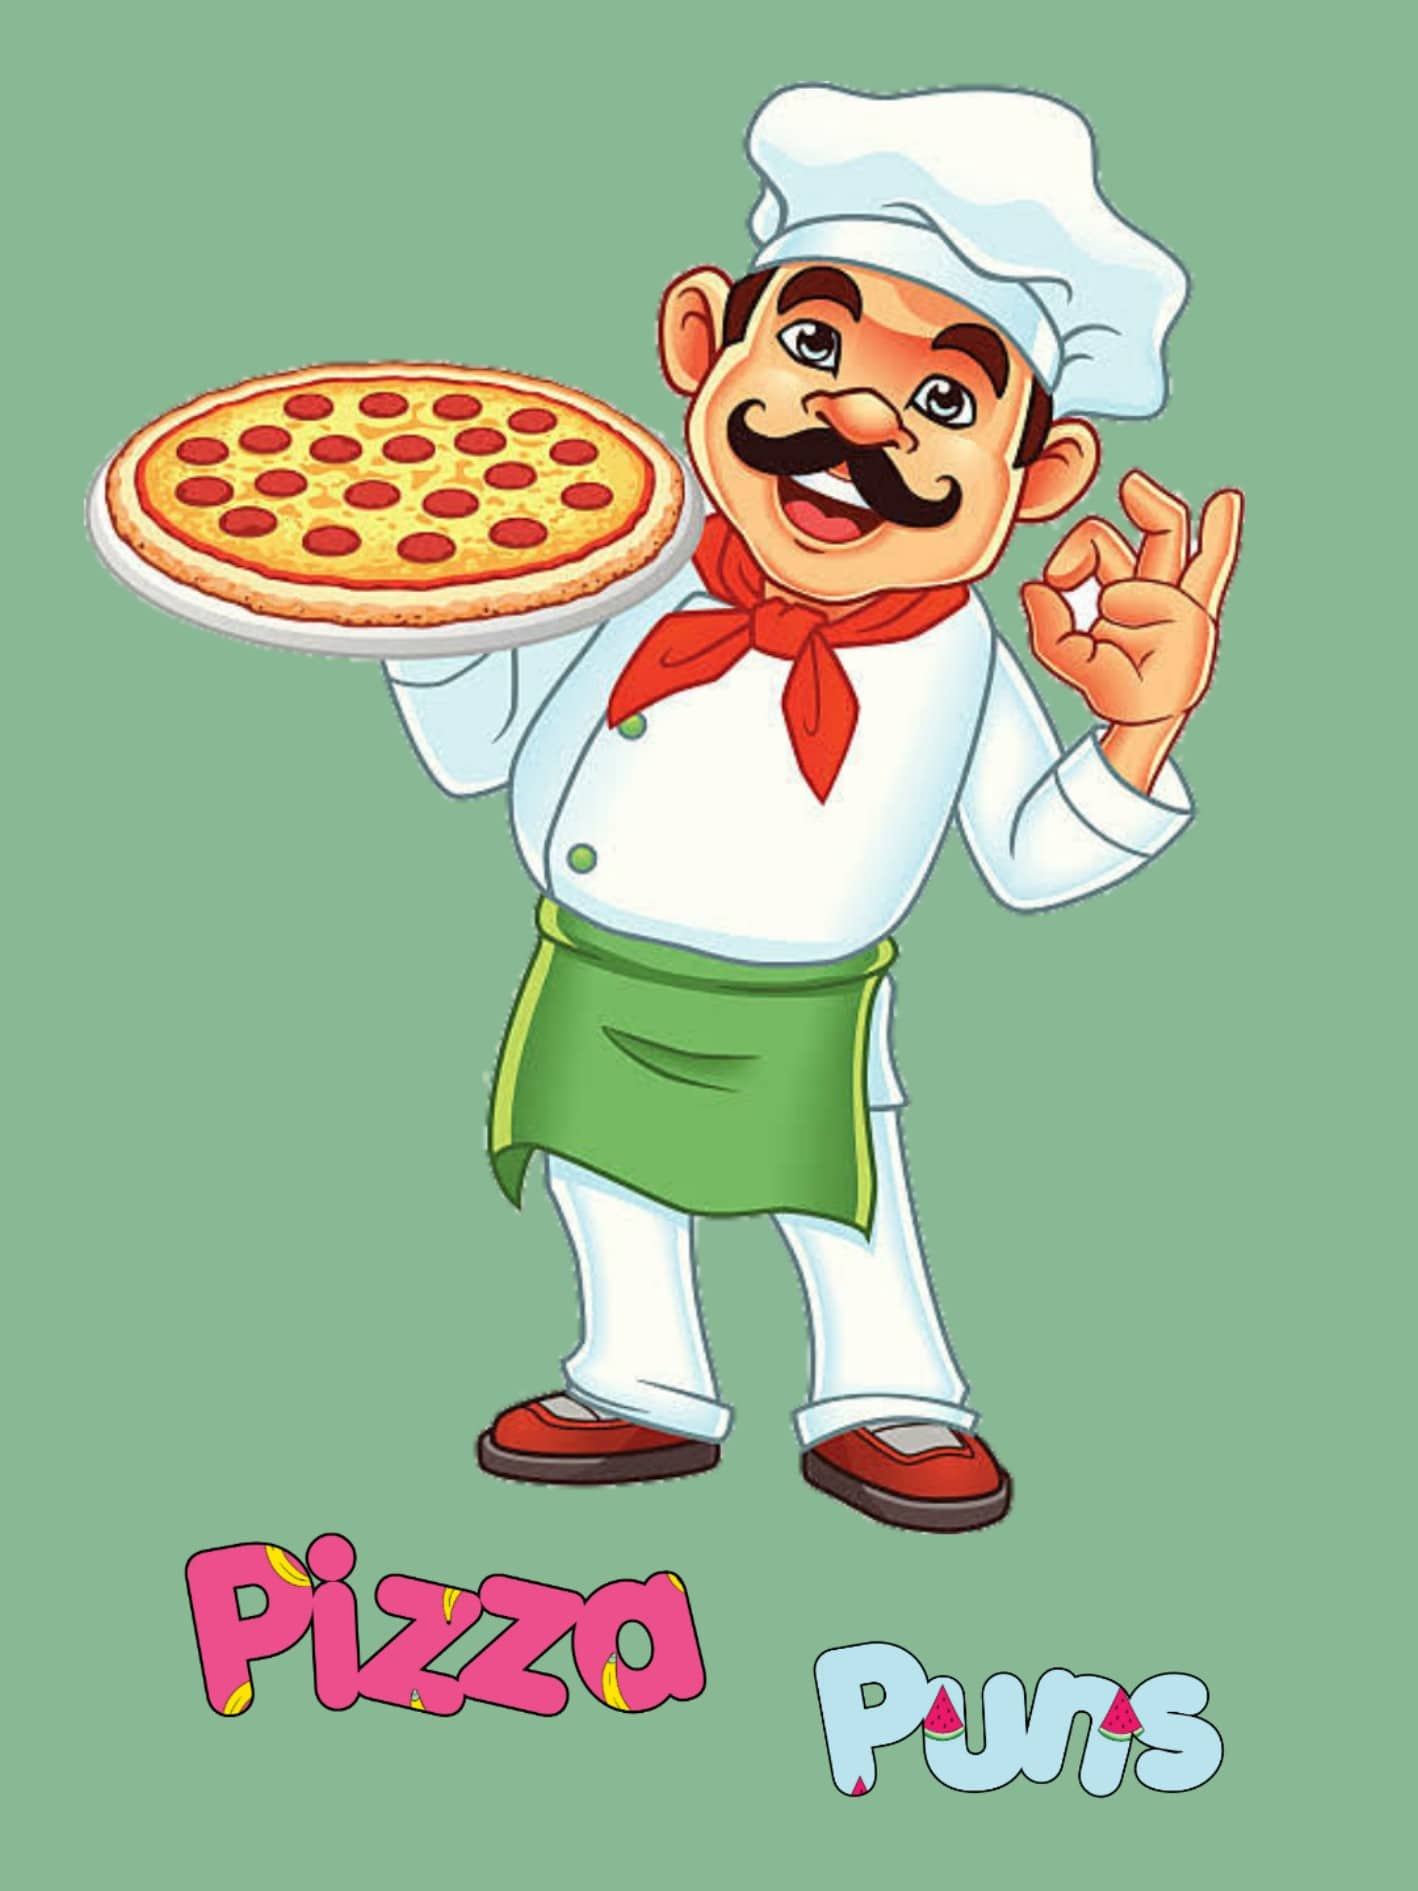 You are currently viewing 50+ Hilarious Pizza Puns That Will Make You Die Laughing